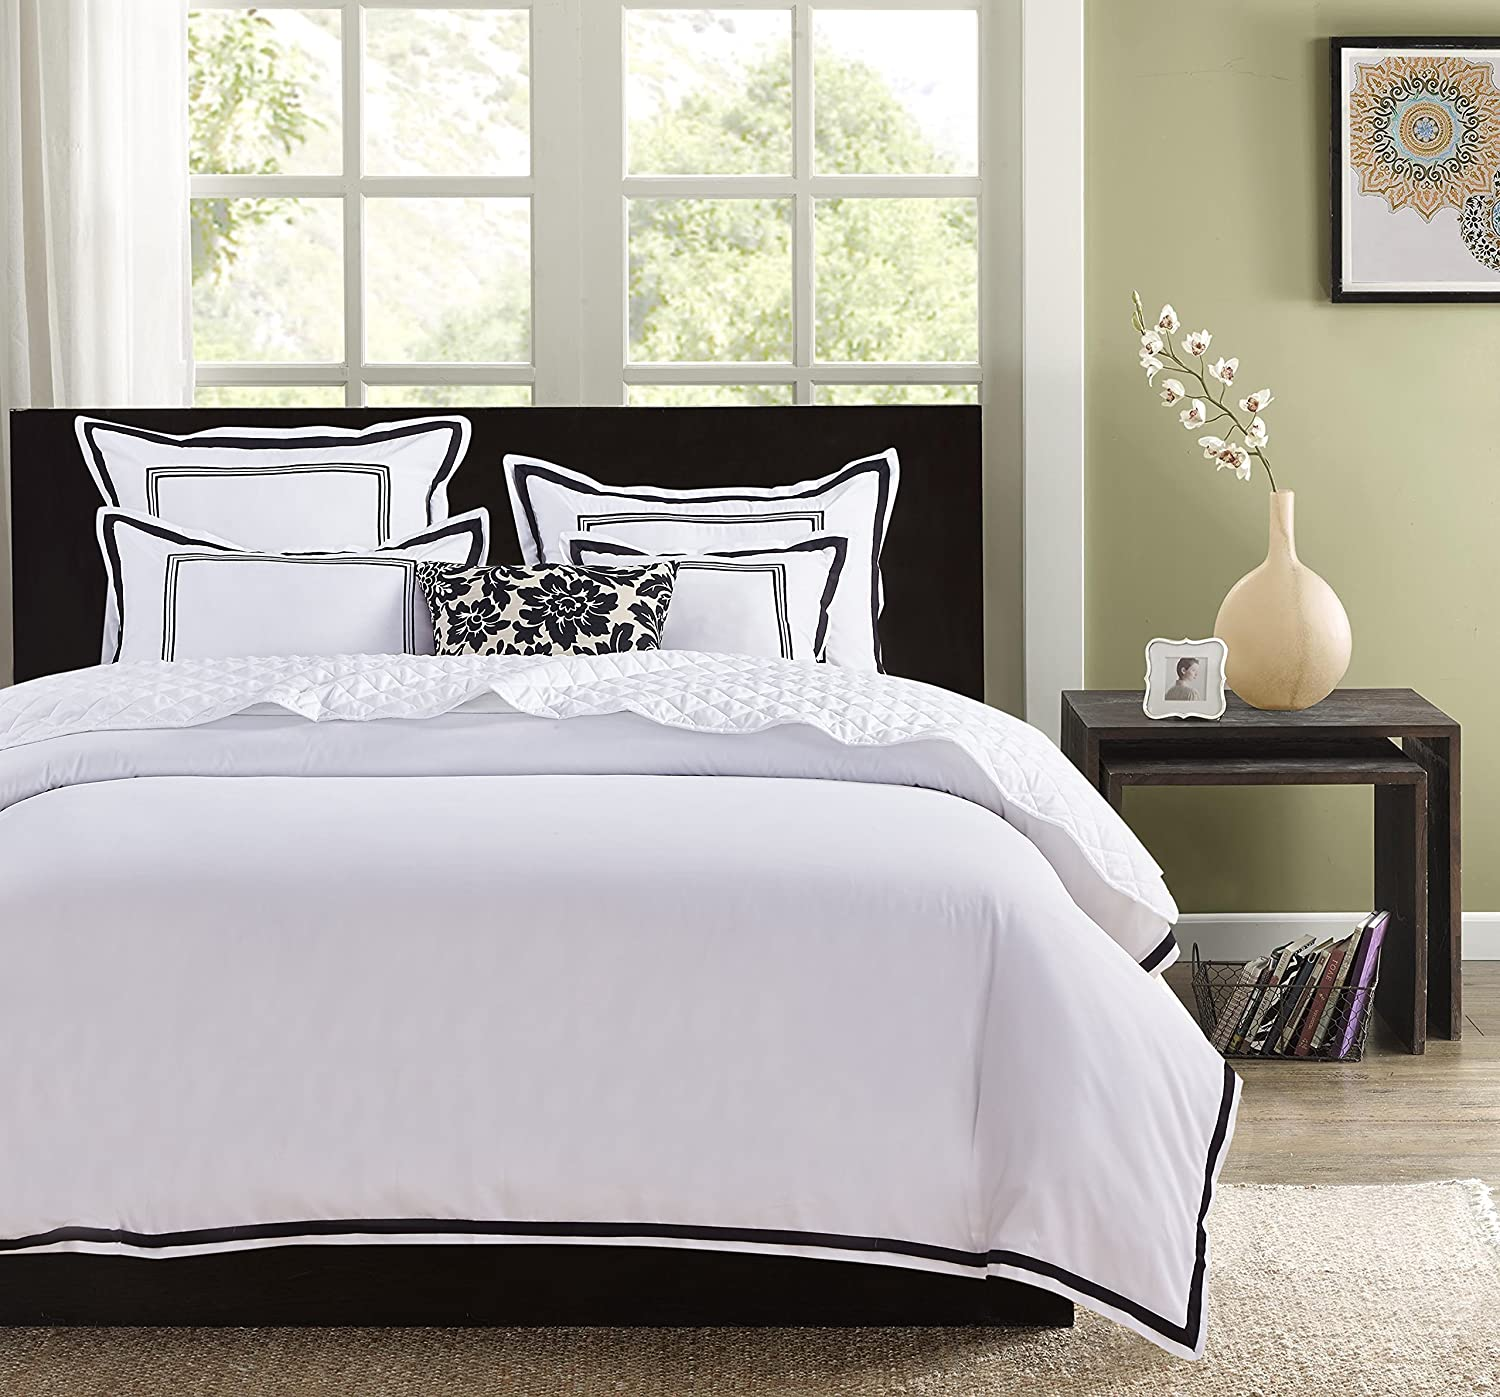 Hotel Luxury 3pc Duvet Cover Set- Elegant White/Black Trim Hotel Quality Design-Silky Soft- Wrinkle & Fade Resistant Bedding